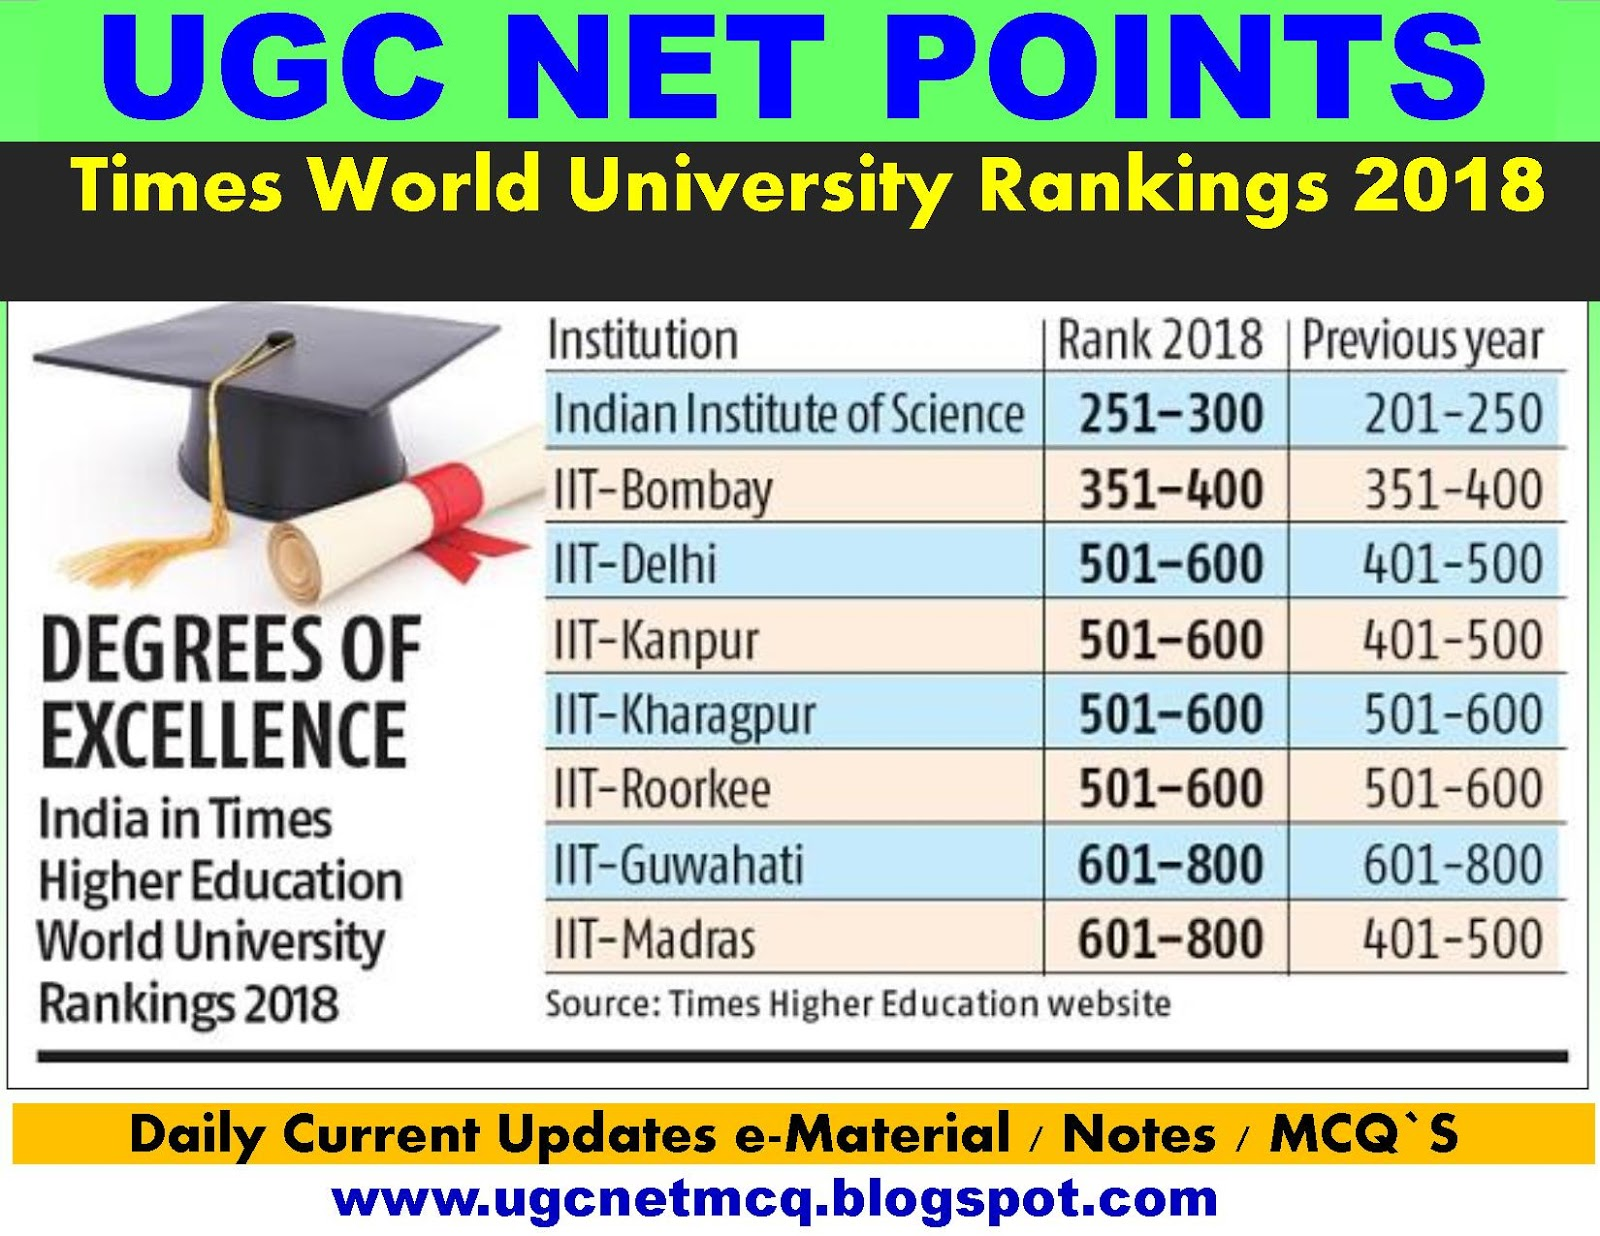 Times World University Rankings 2018 Current Affairs UGC NET POINTS